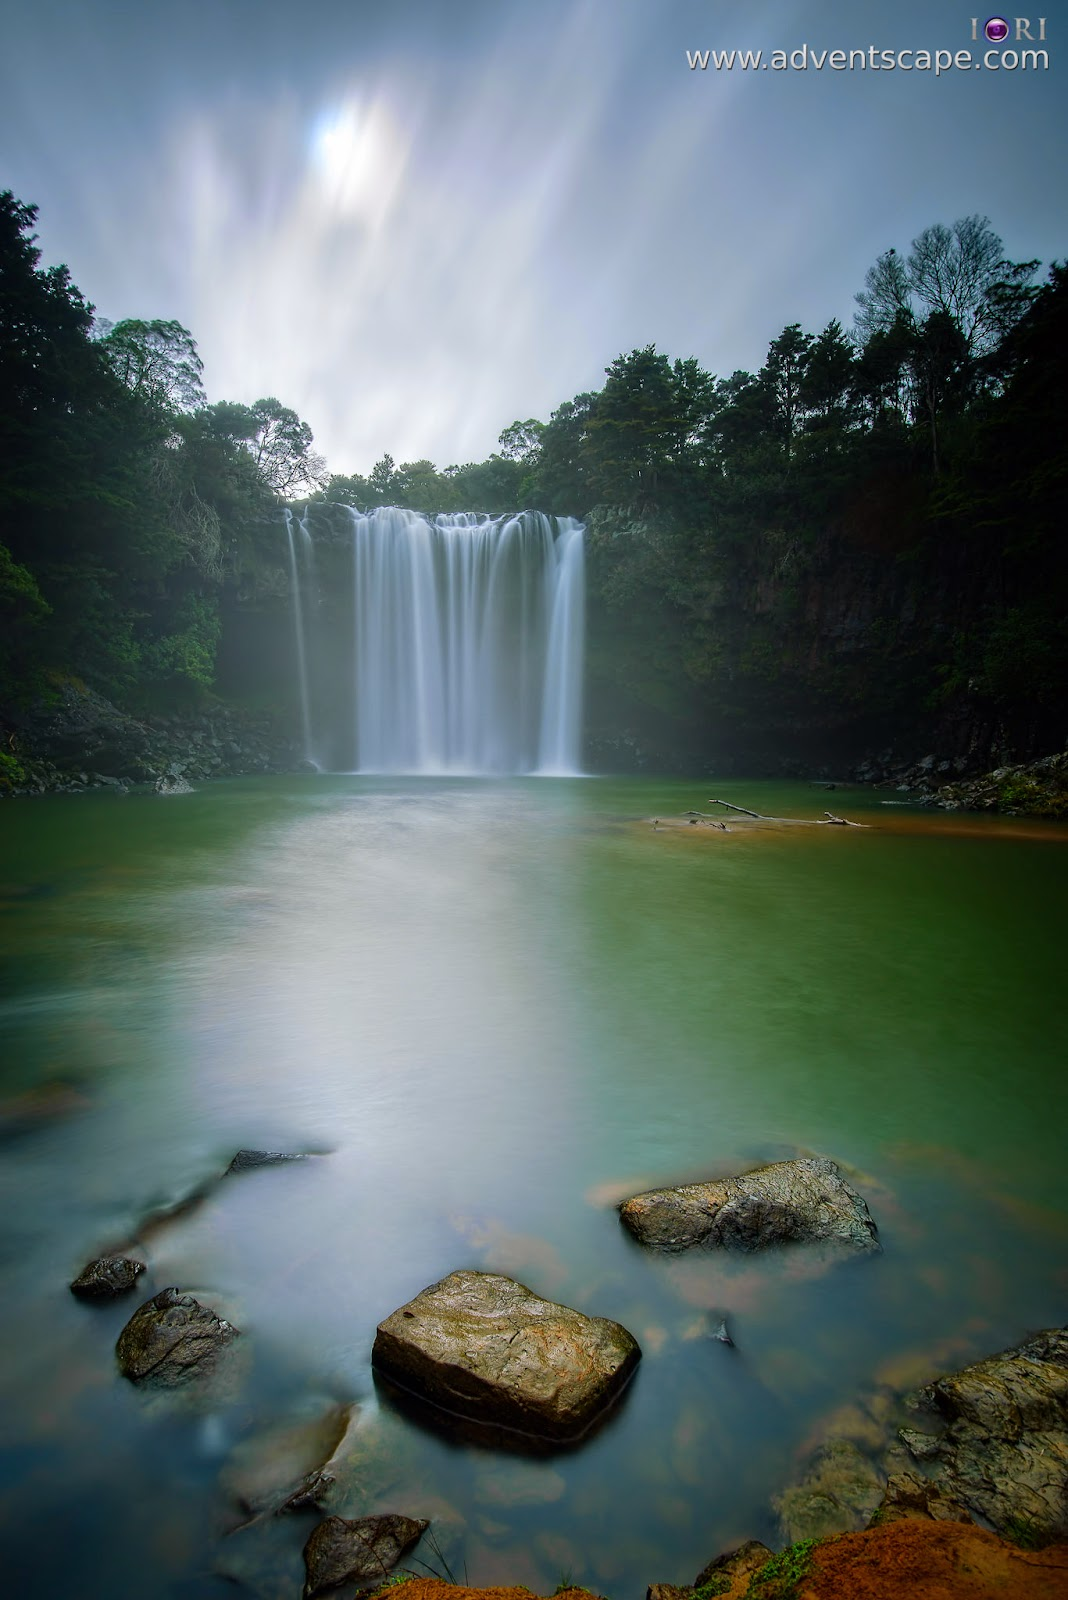 Philip Avellana, Australian Landscape Photographer, adventscape, ND, Neutral Density, filter, 0.9, Lee, solid, waterfall, Rainbow falls, NZ, New Zealand